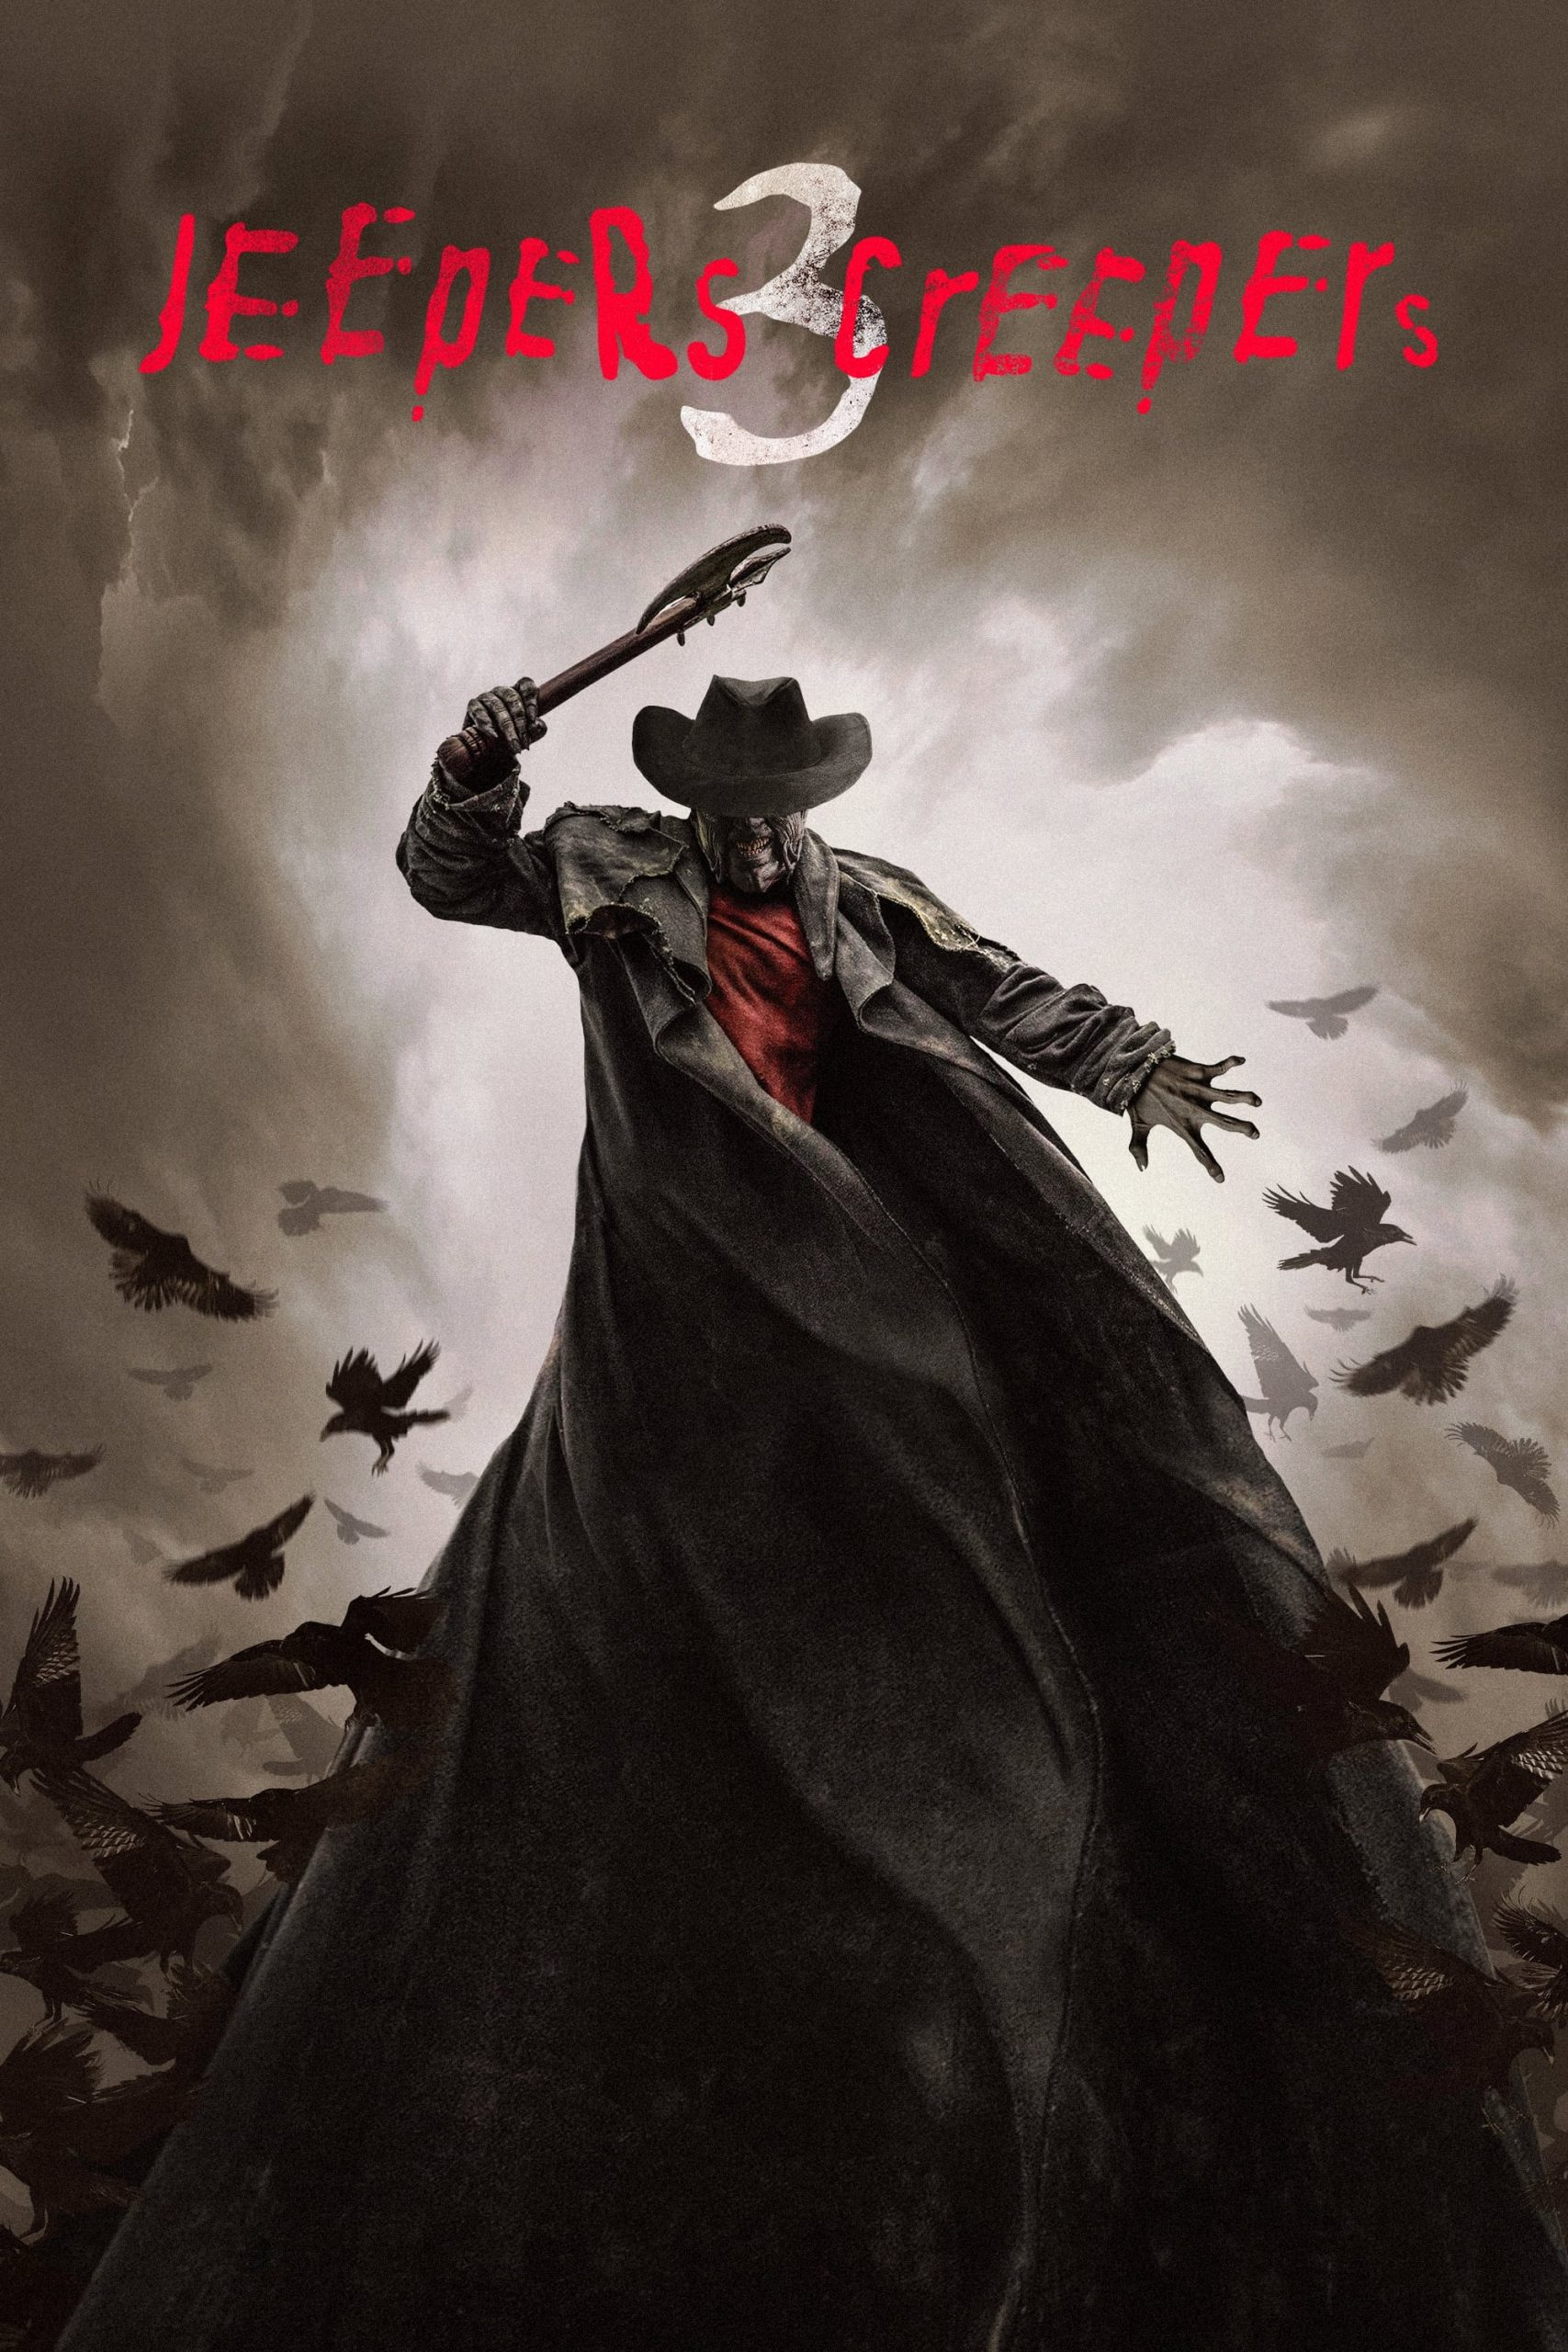 thumb Jeepers Creepers 3